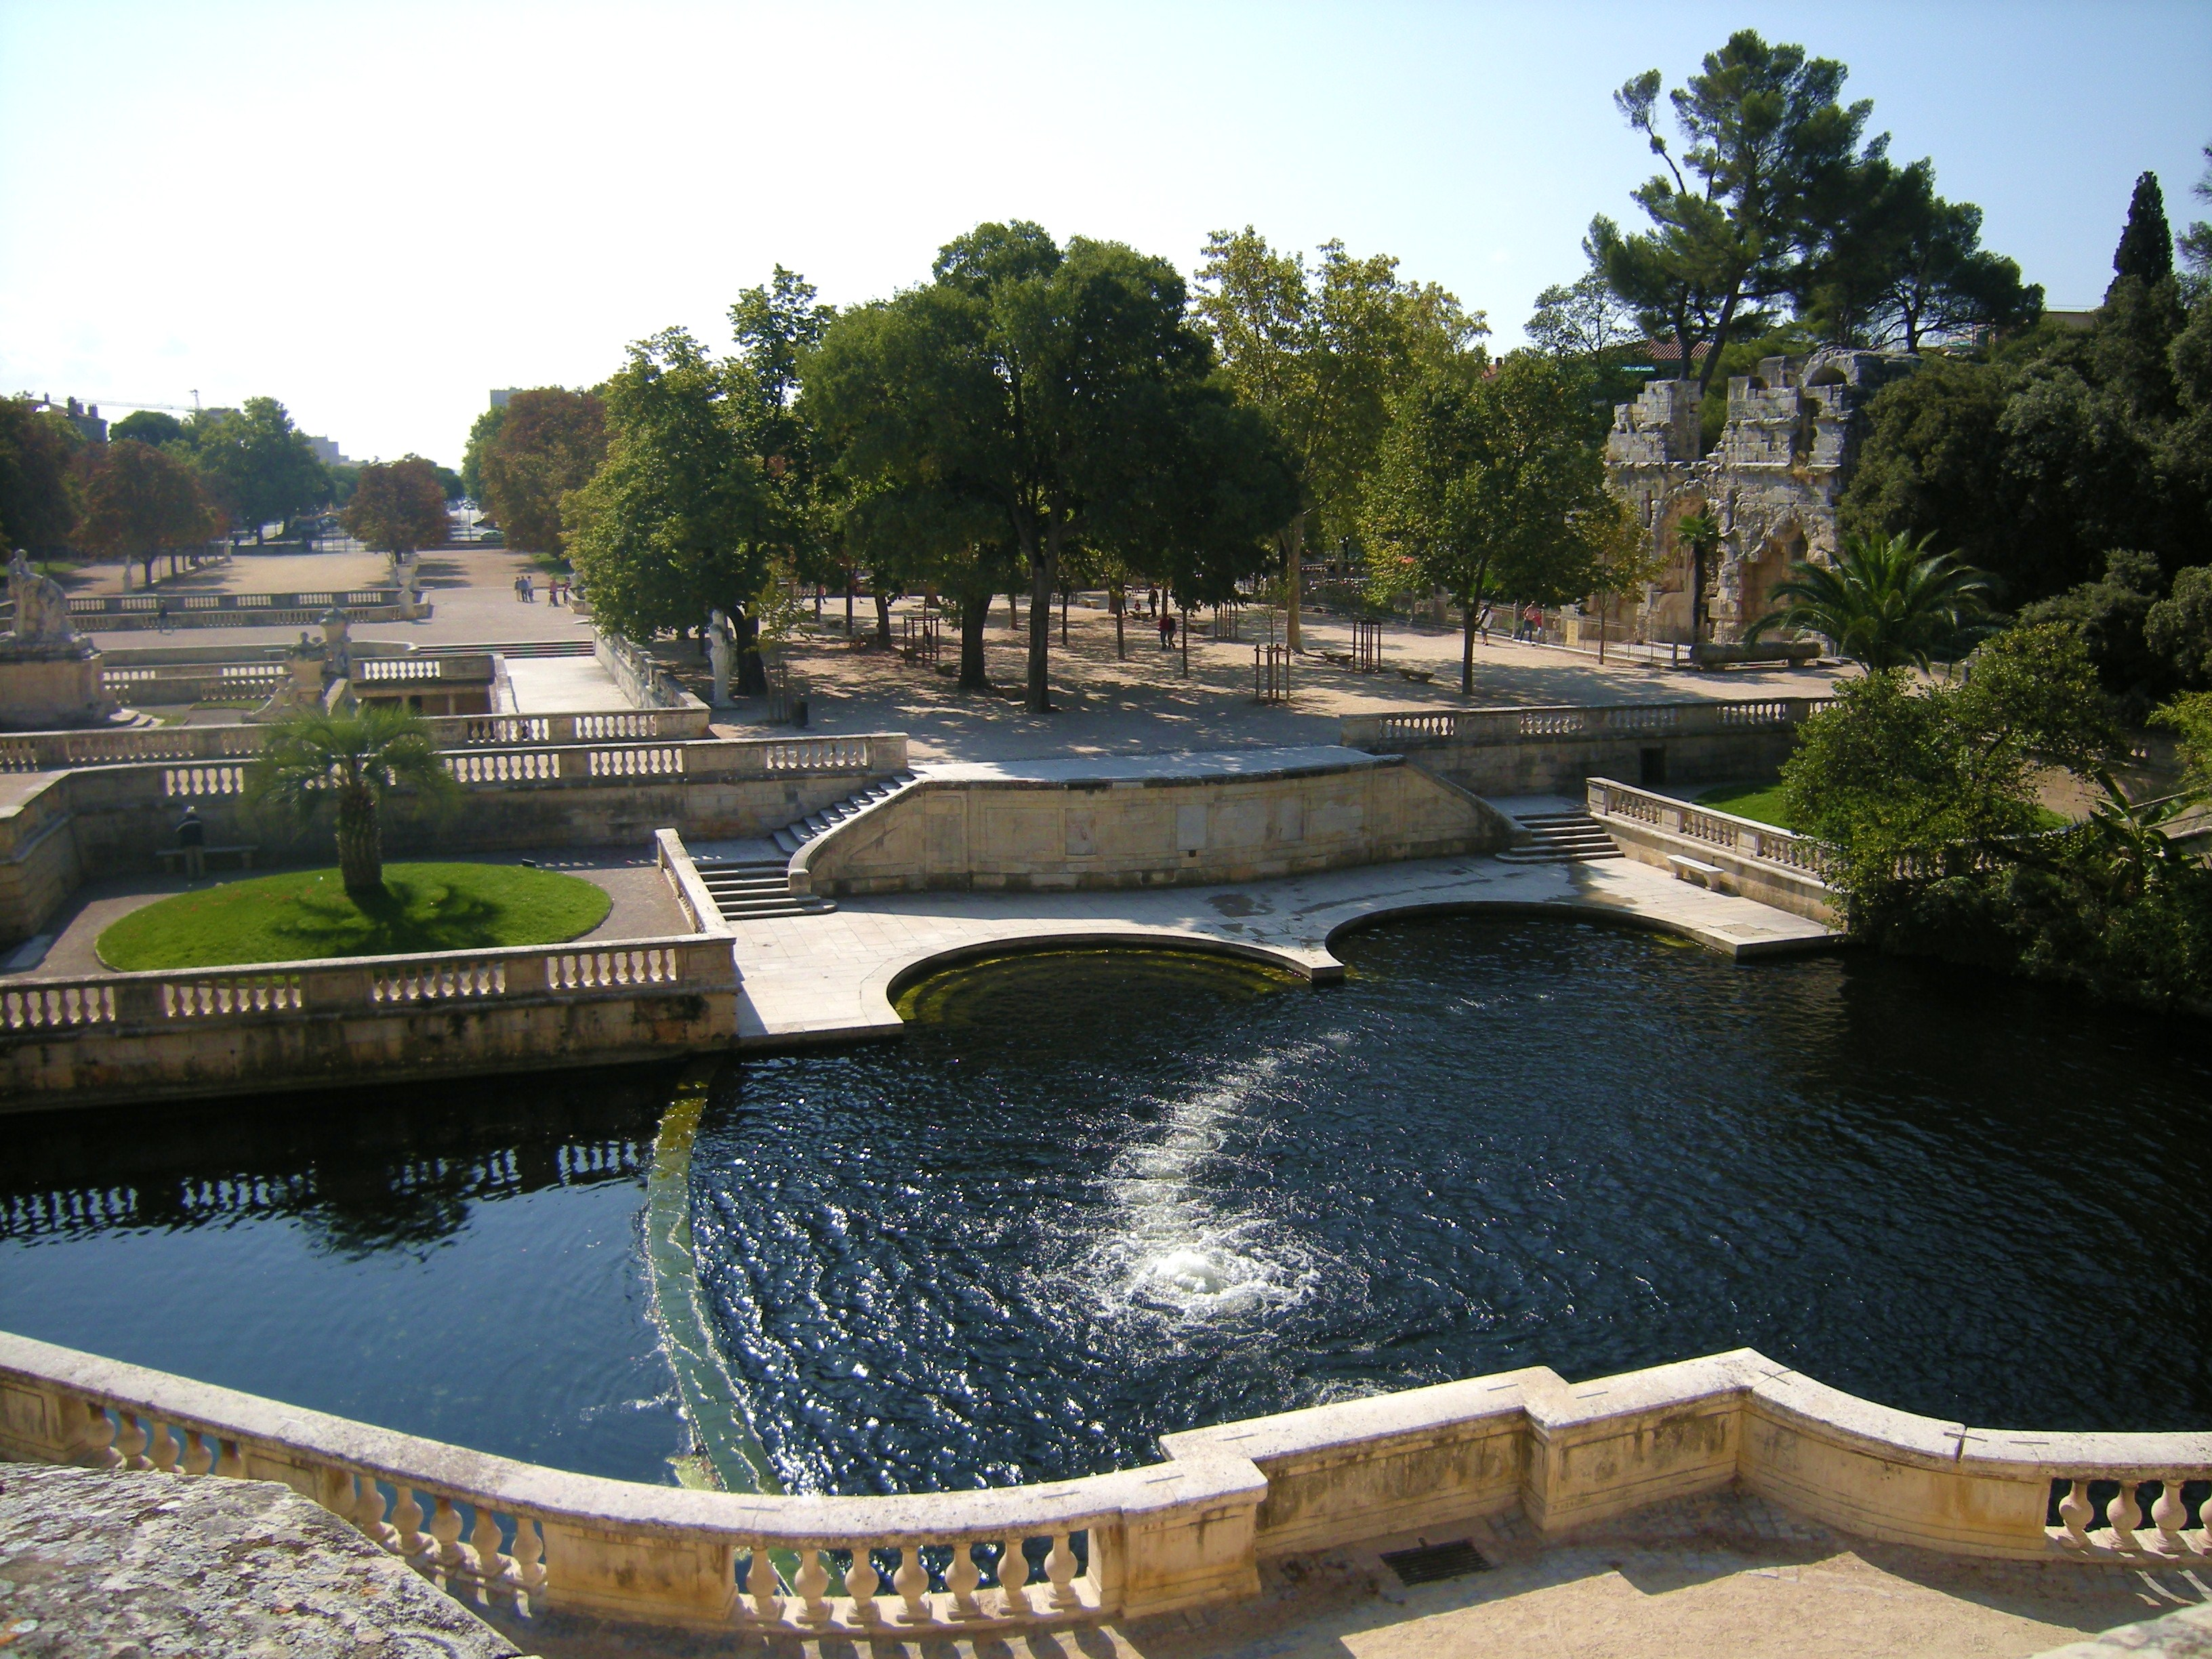 Jardin de la fontaine nimes caribbean living blog for Meuble de jardin nimes